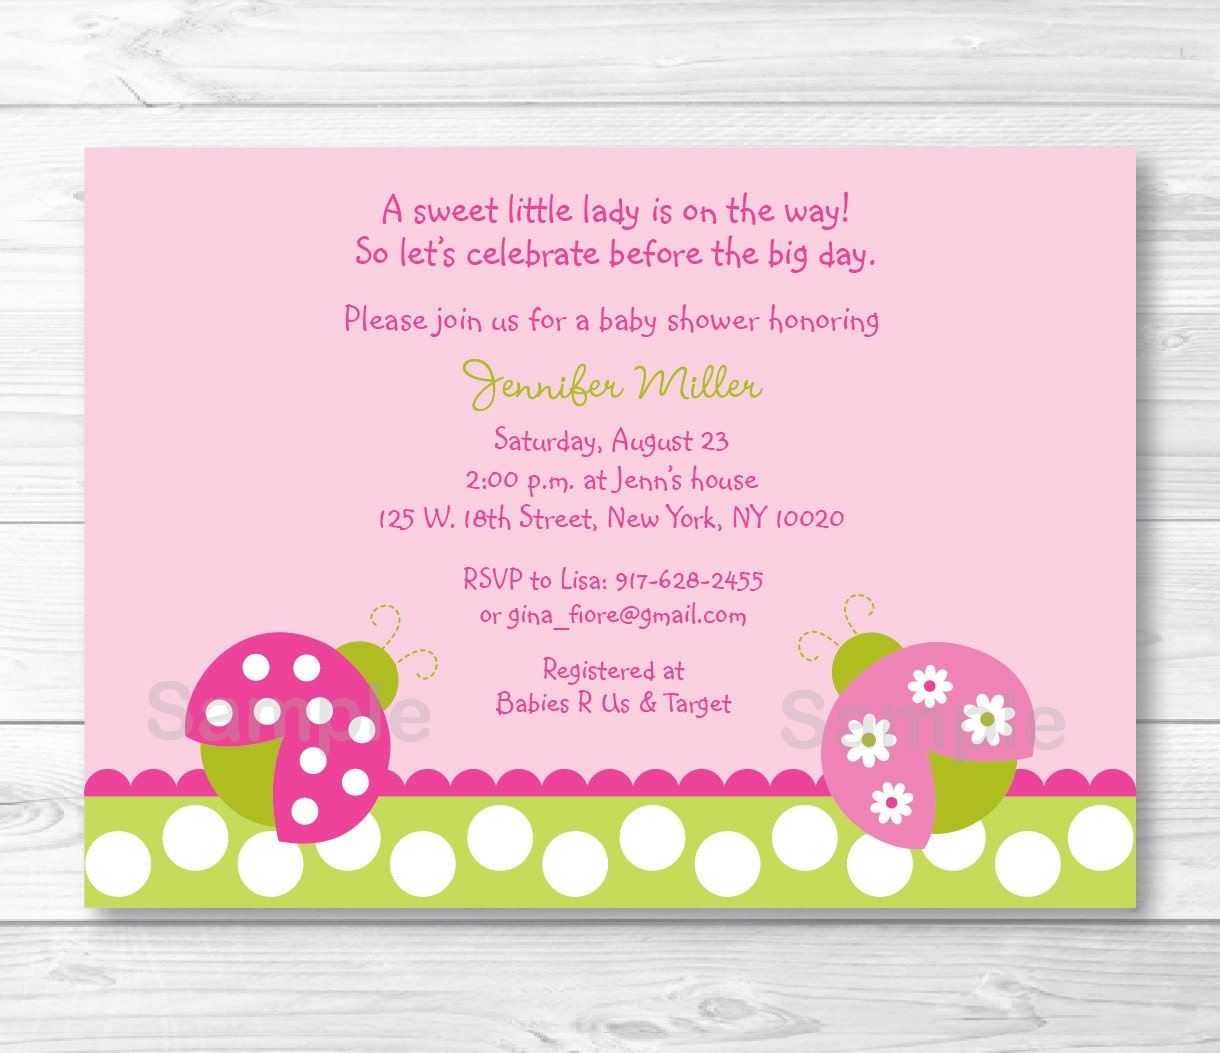 Cute Pink Ladybug Baby Shower Invitation / Ladybug Baby Shower